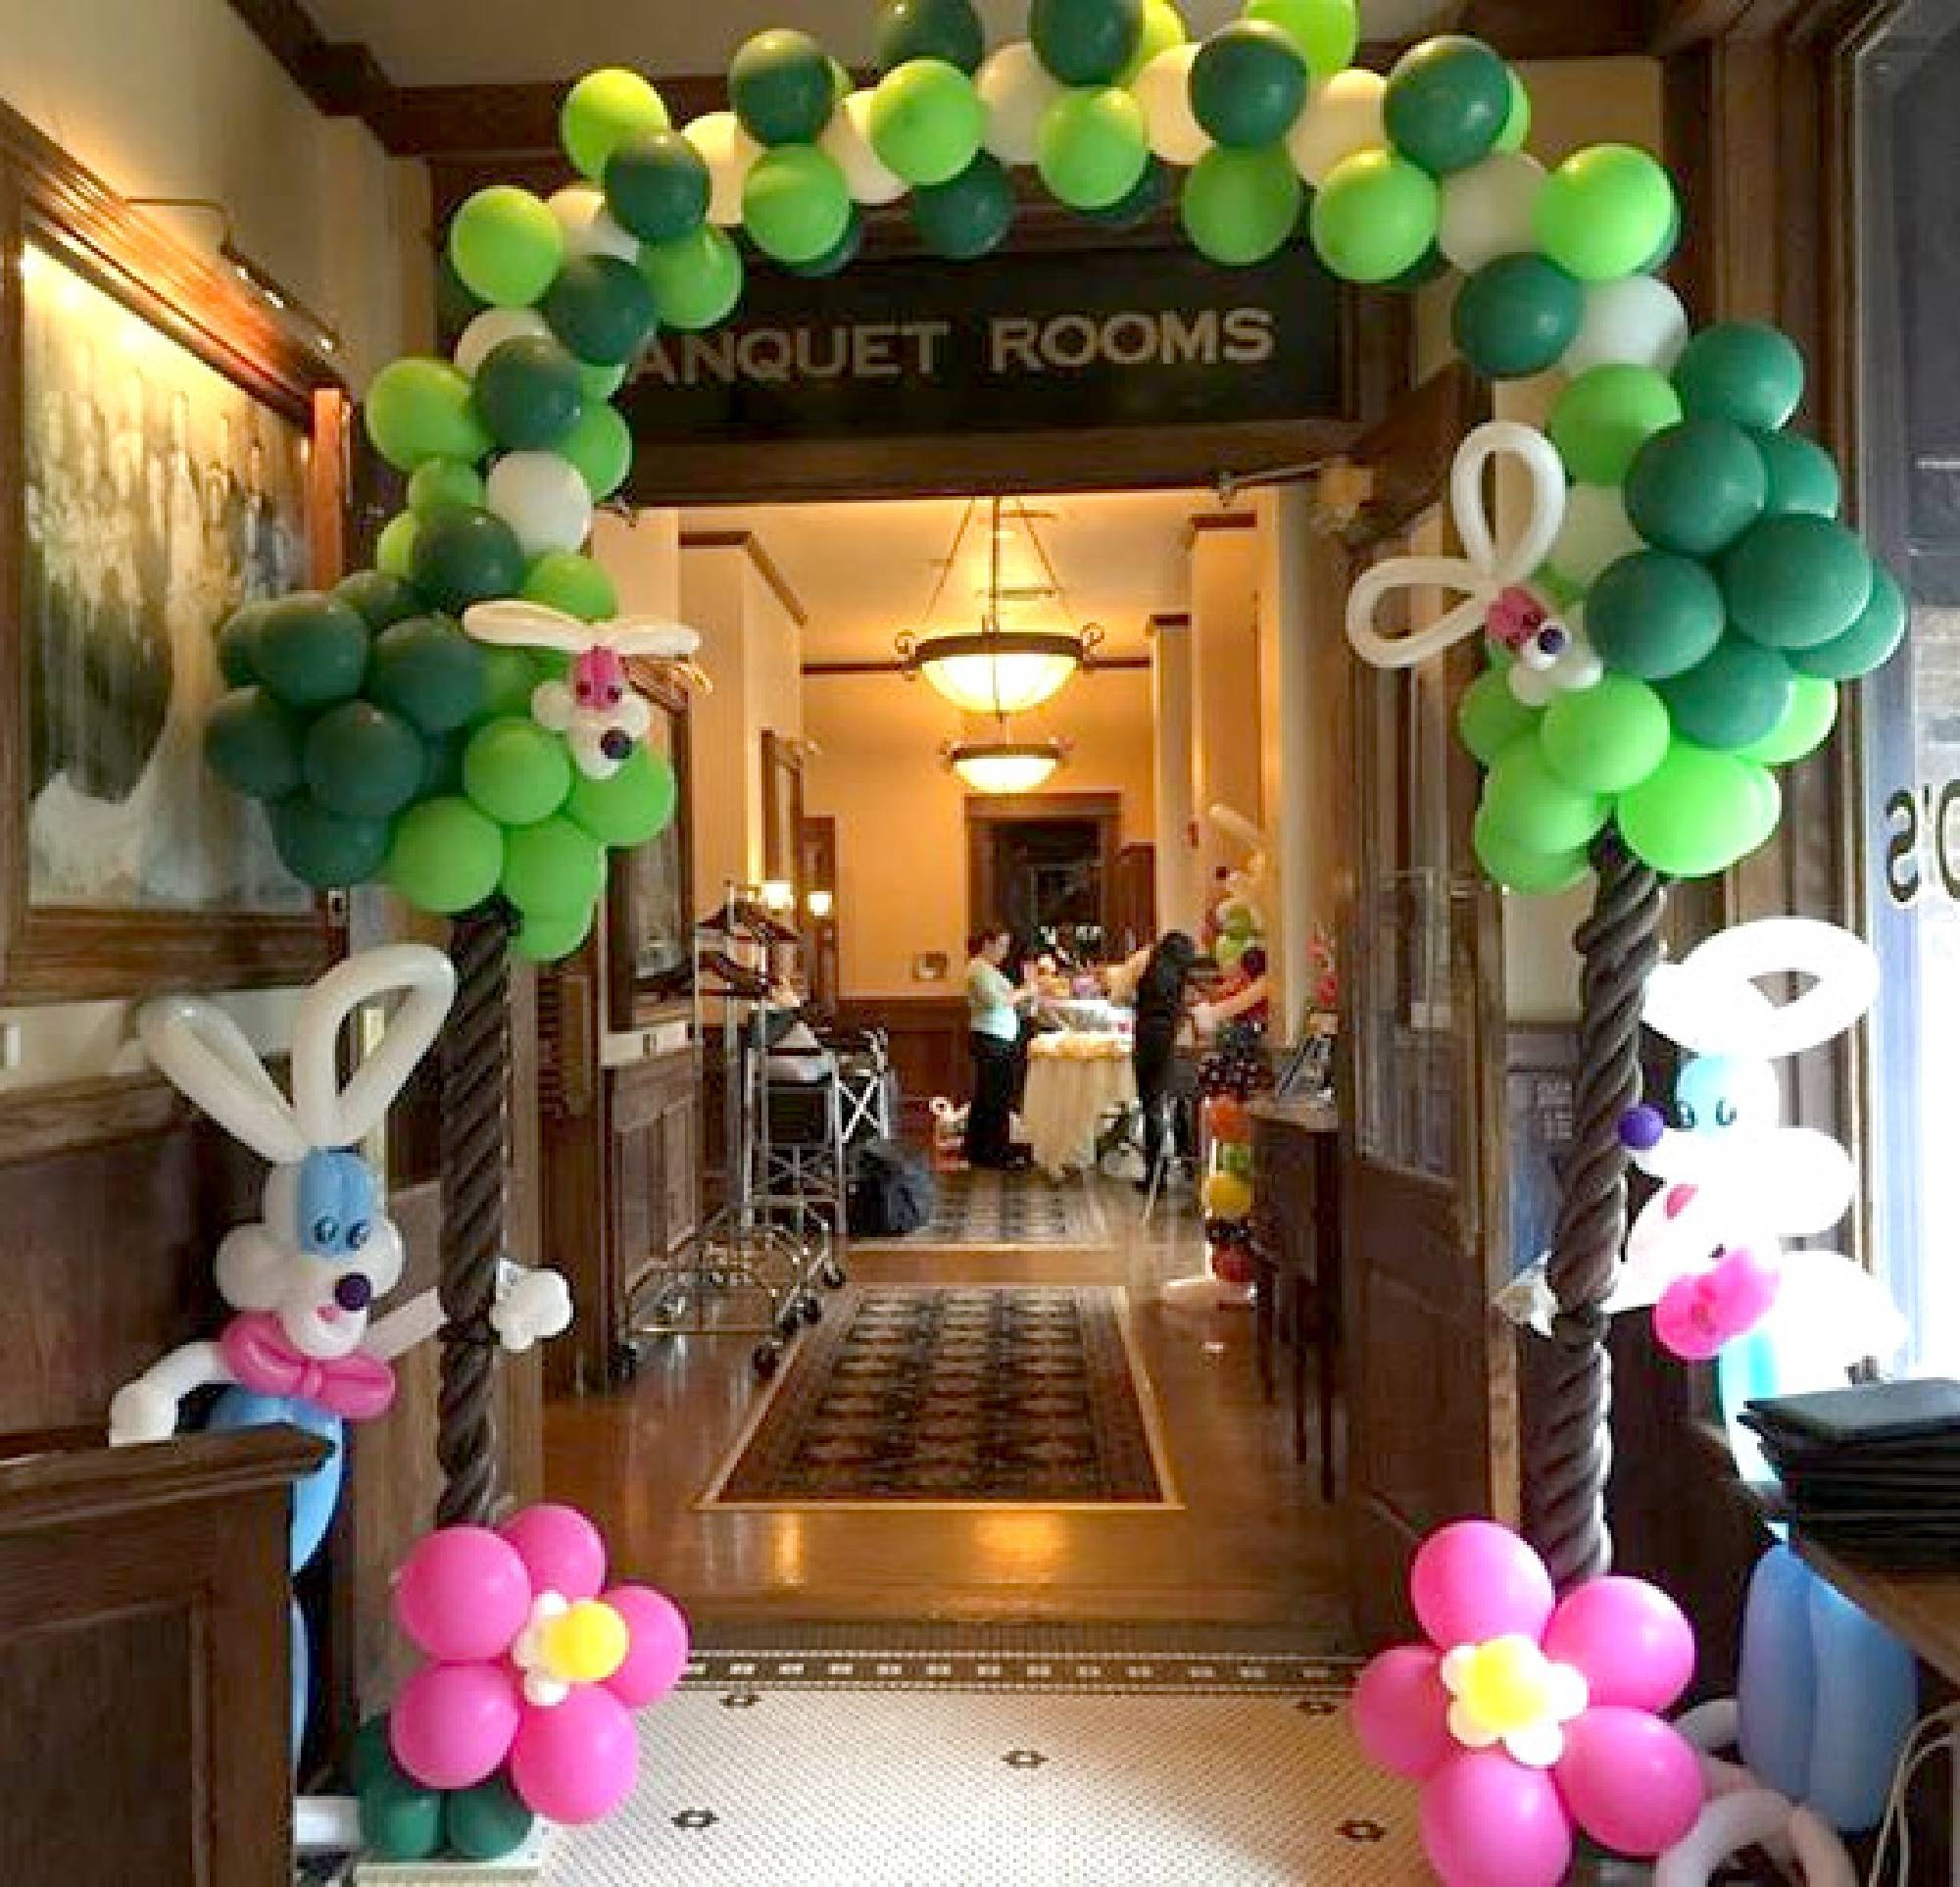 Premiere balloon decor for your event in raleigh nc - Restaurant decor supplies ...